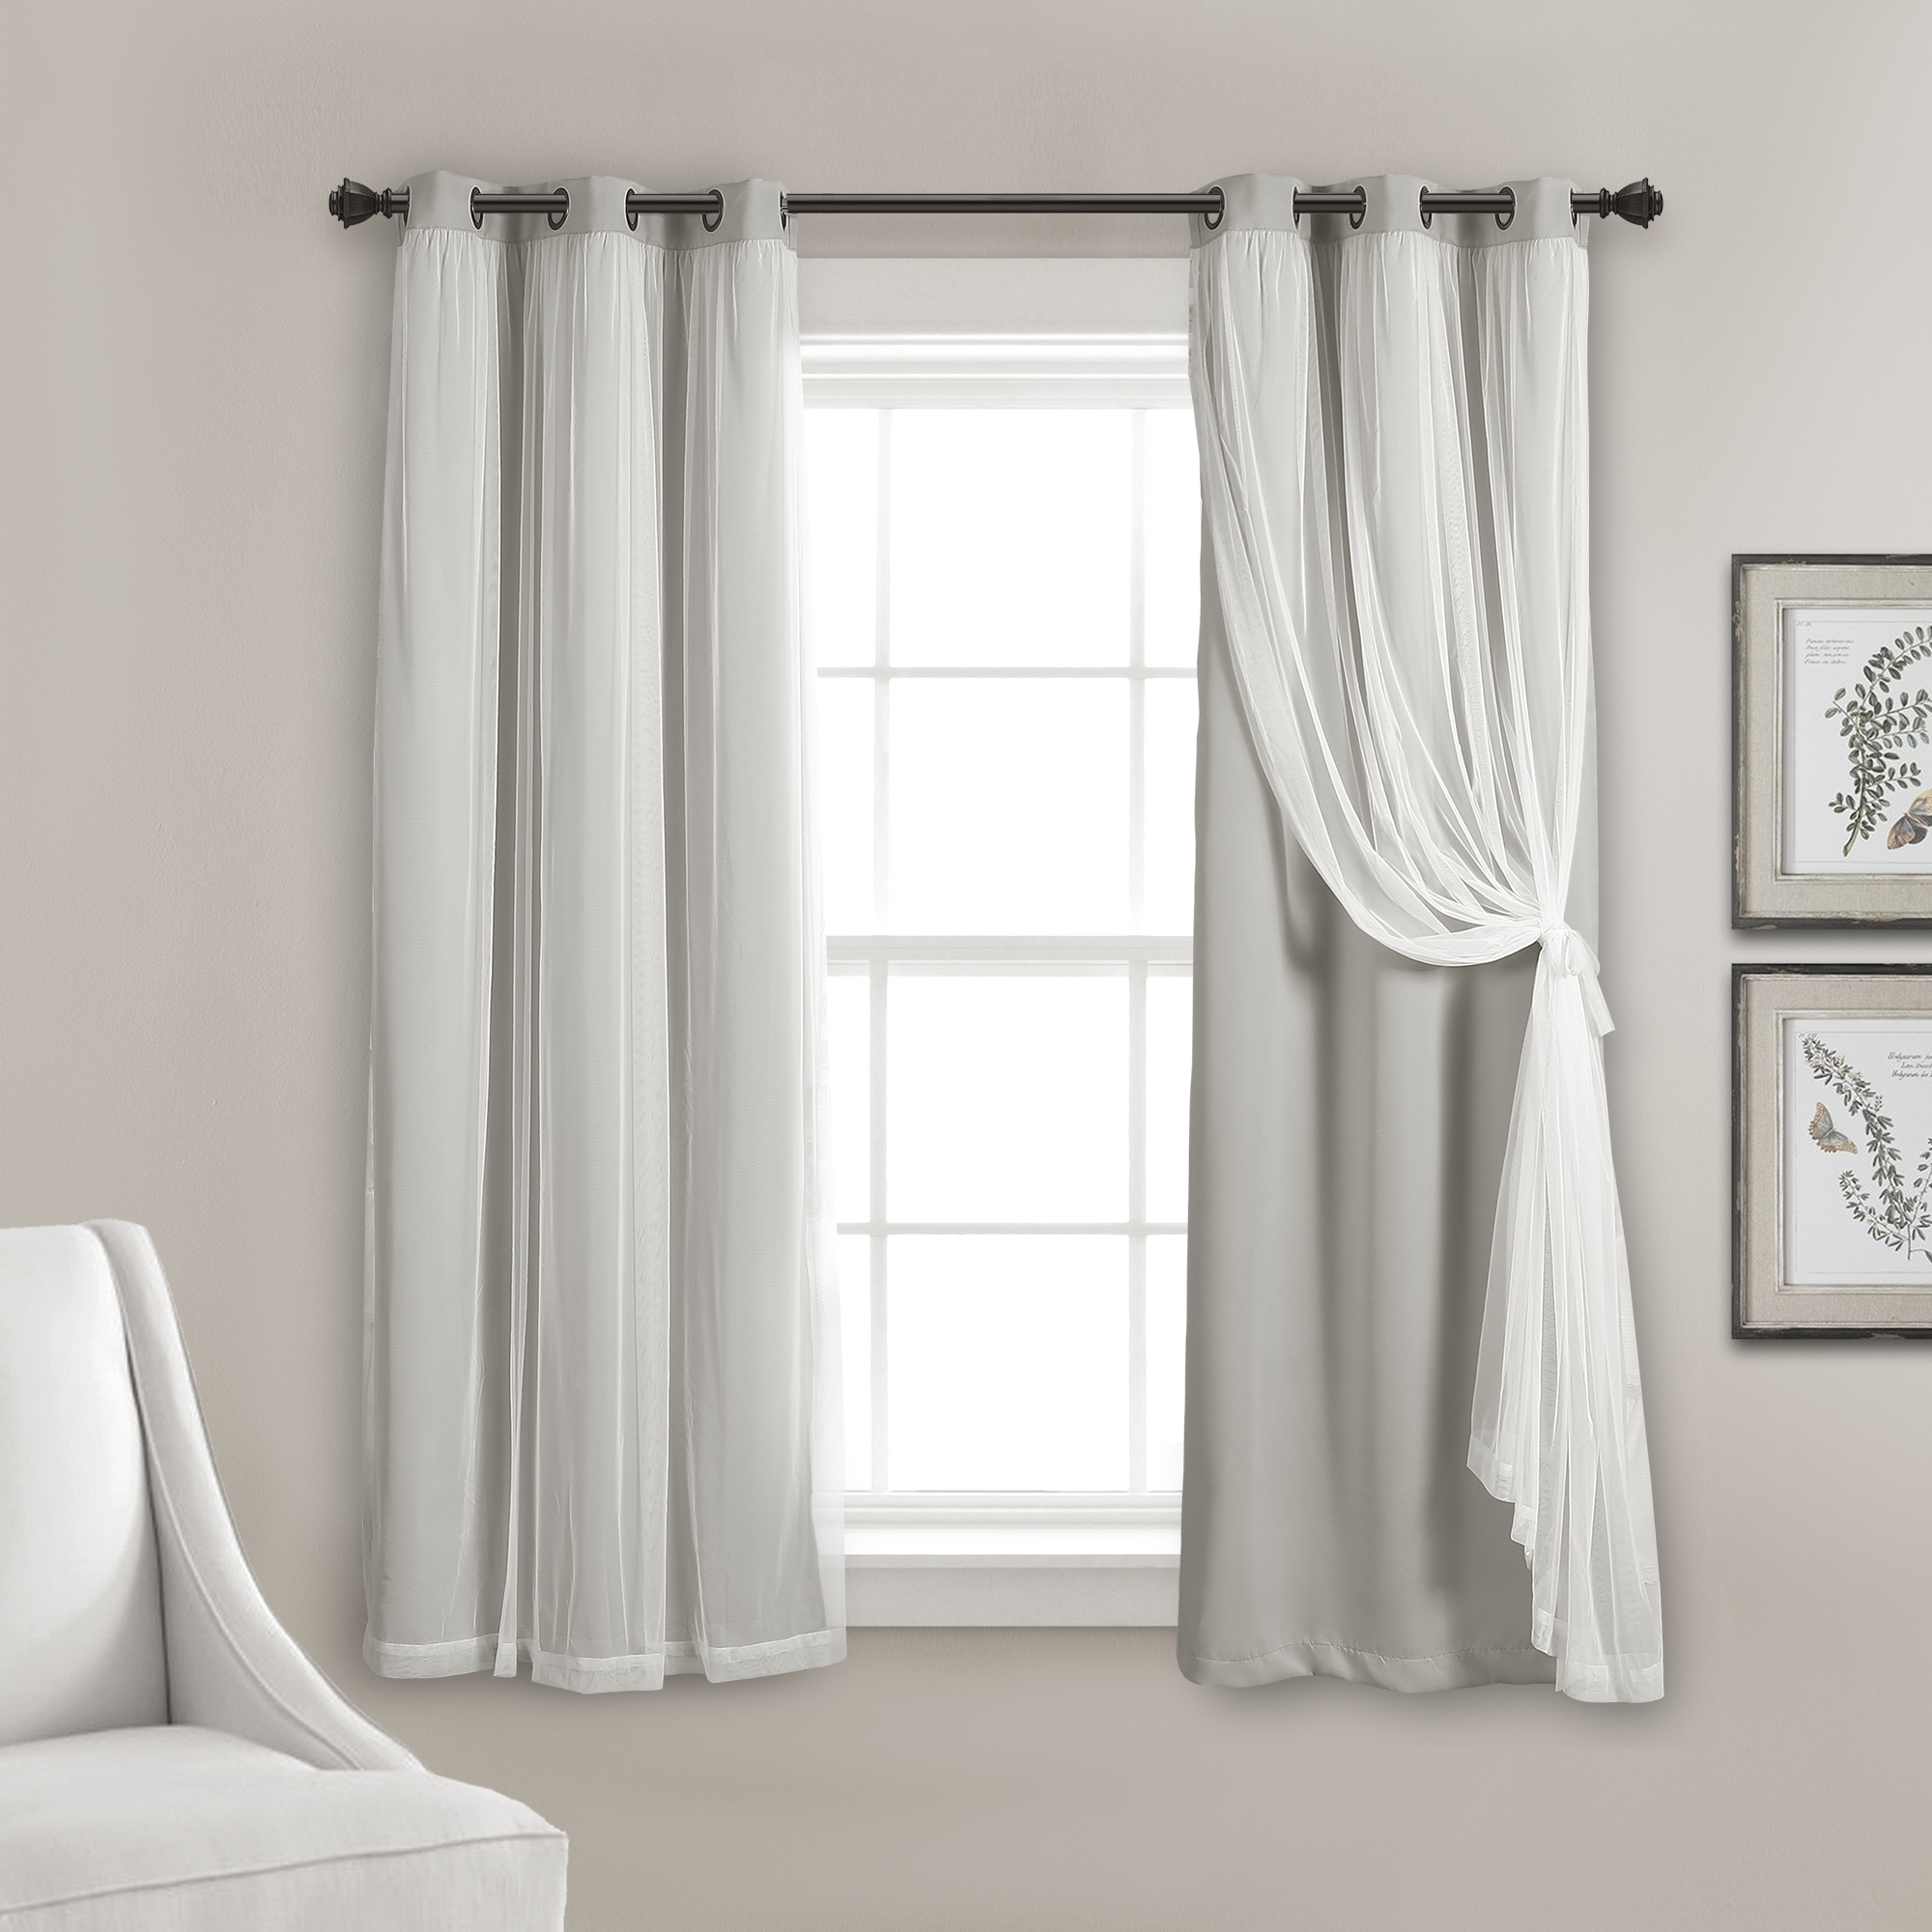 Lush Decor Grommet Sheer Window Curtain Panels With Insulated Blackout Lining Solid Color 100% Polyester, Light Gray, 63″L x 38″W, Set o f 2 (Walmart)